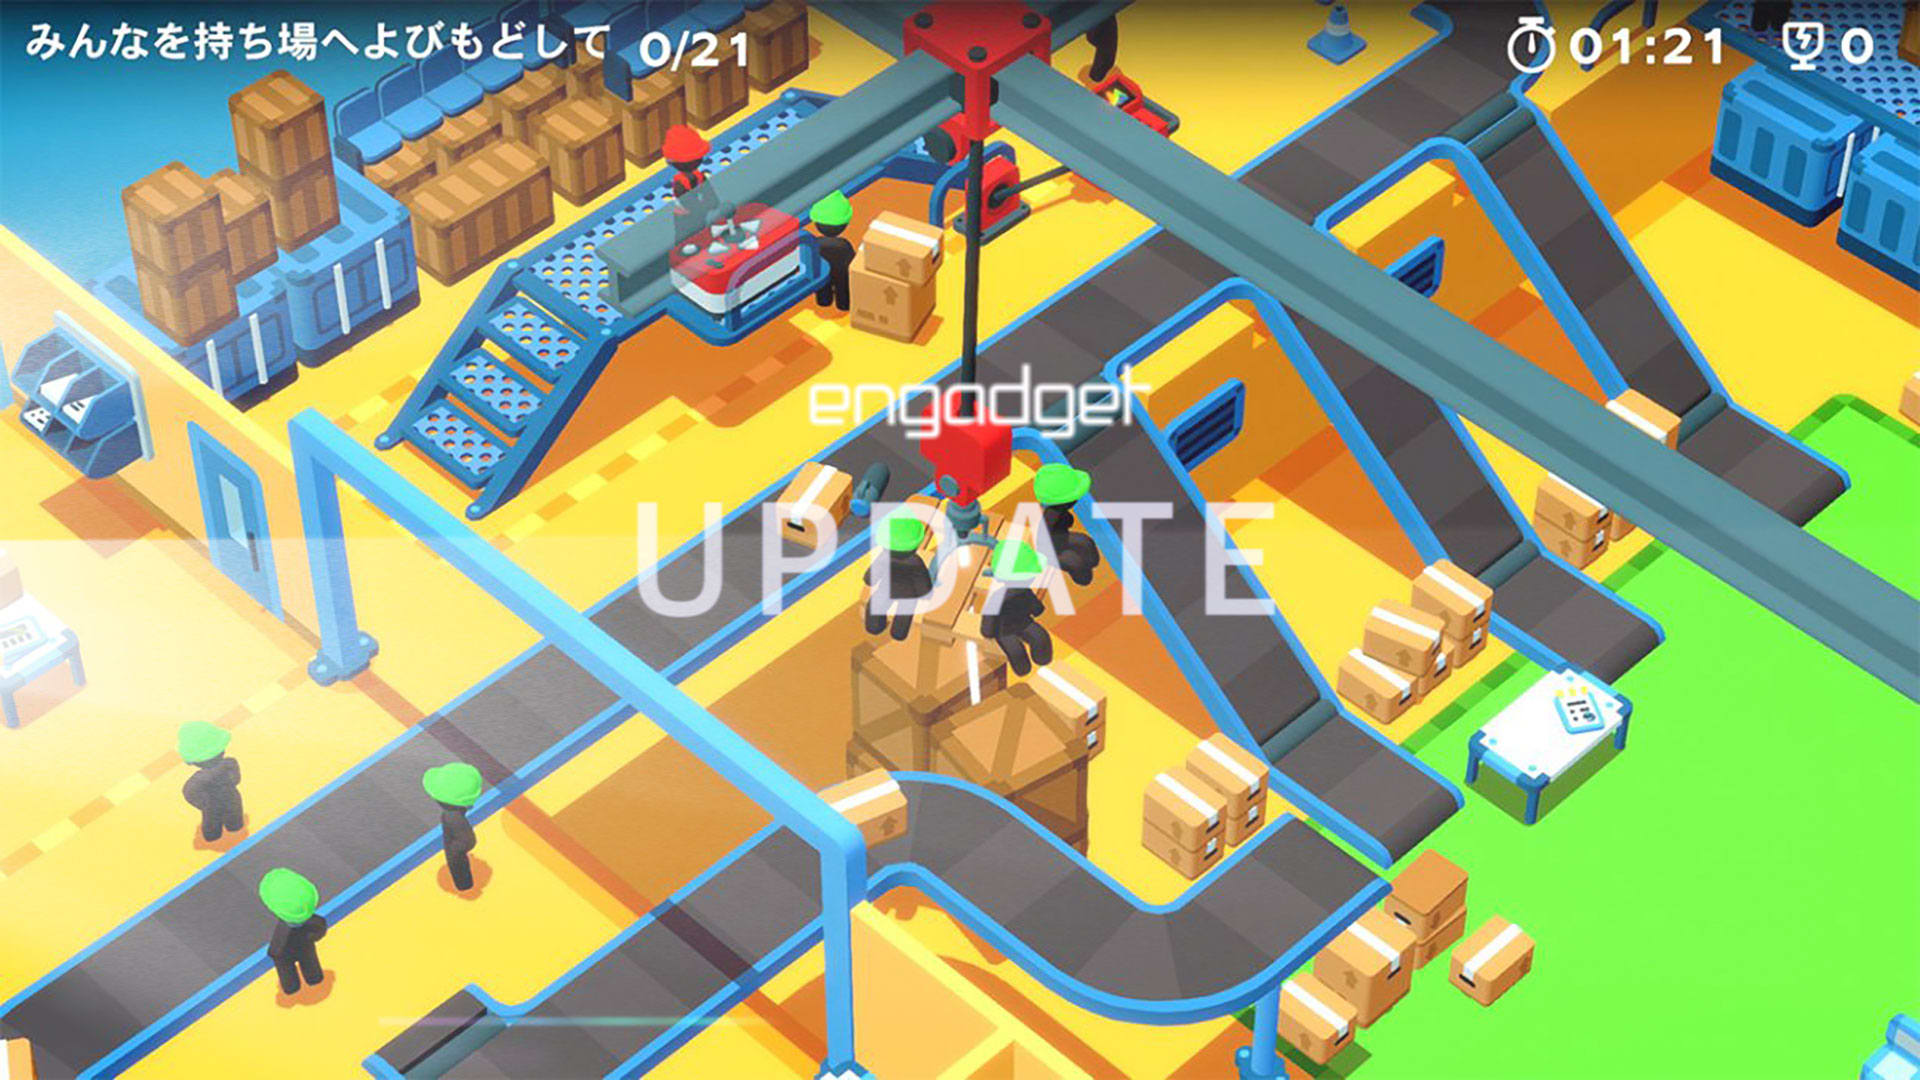 Engadget Update EP55